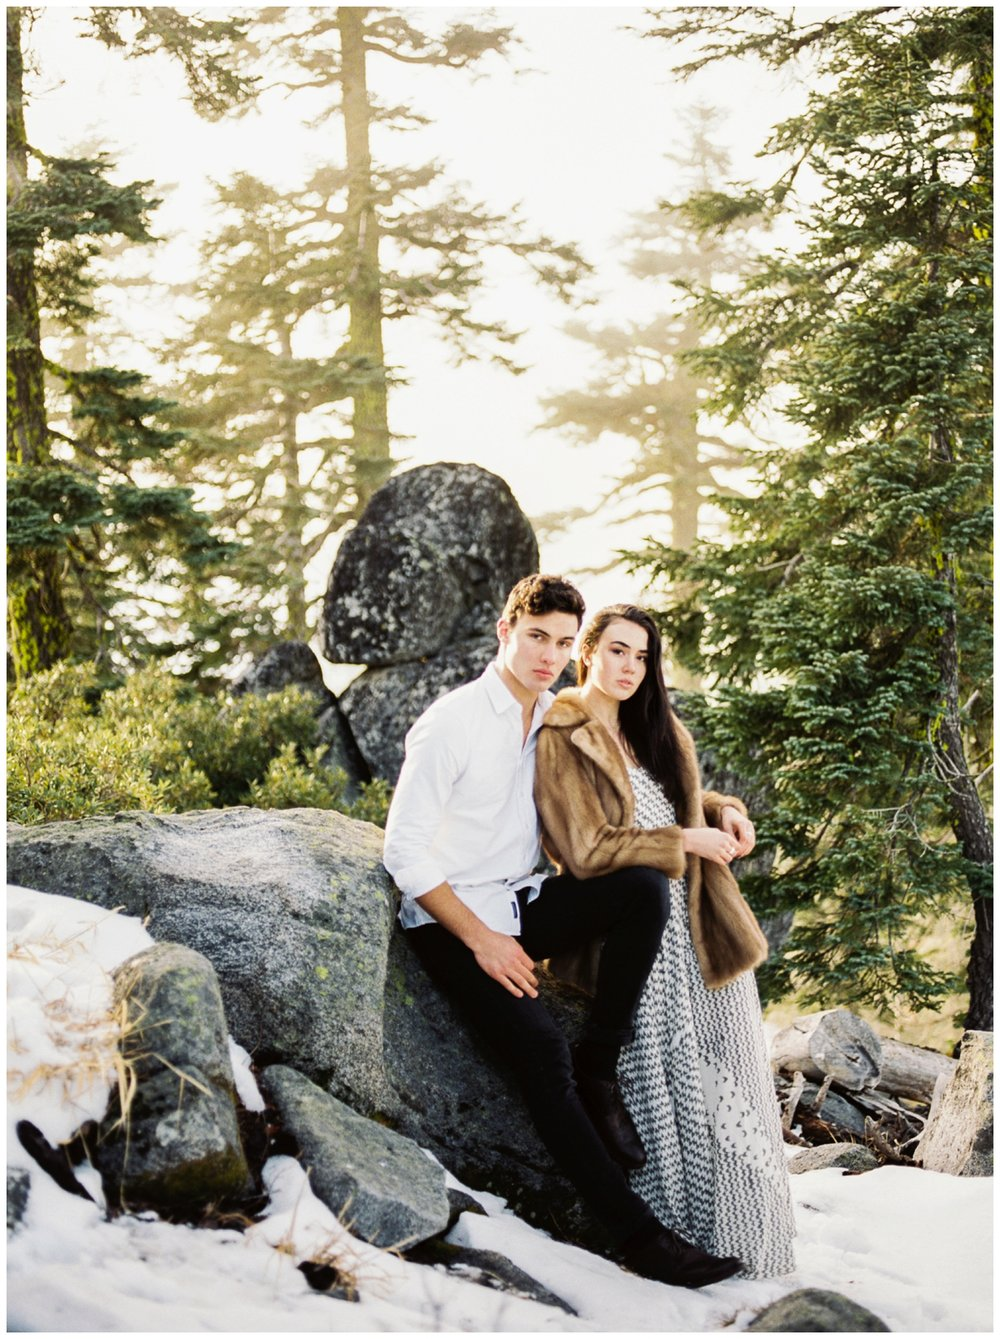 winter engagement session inspiration by juliet ashley photography